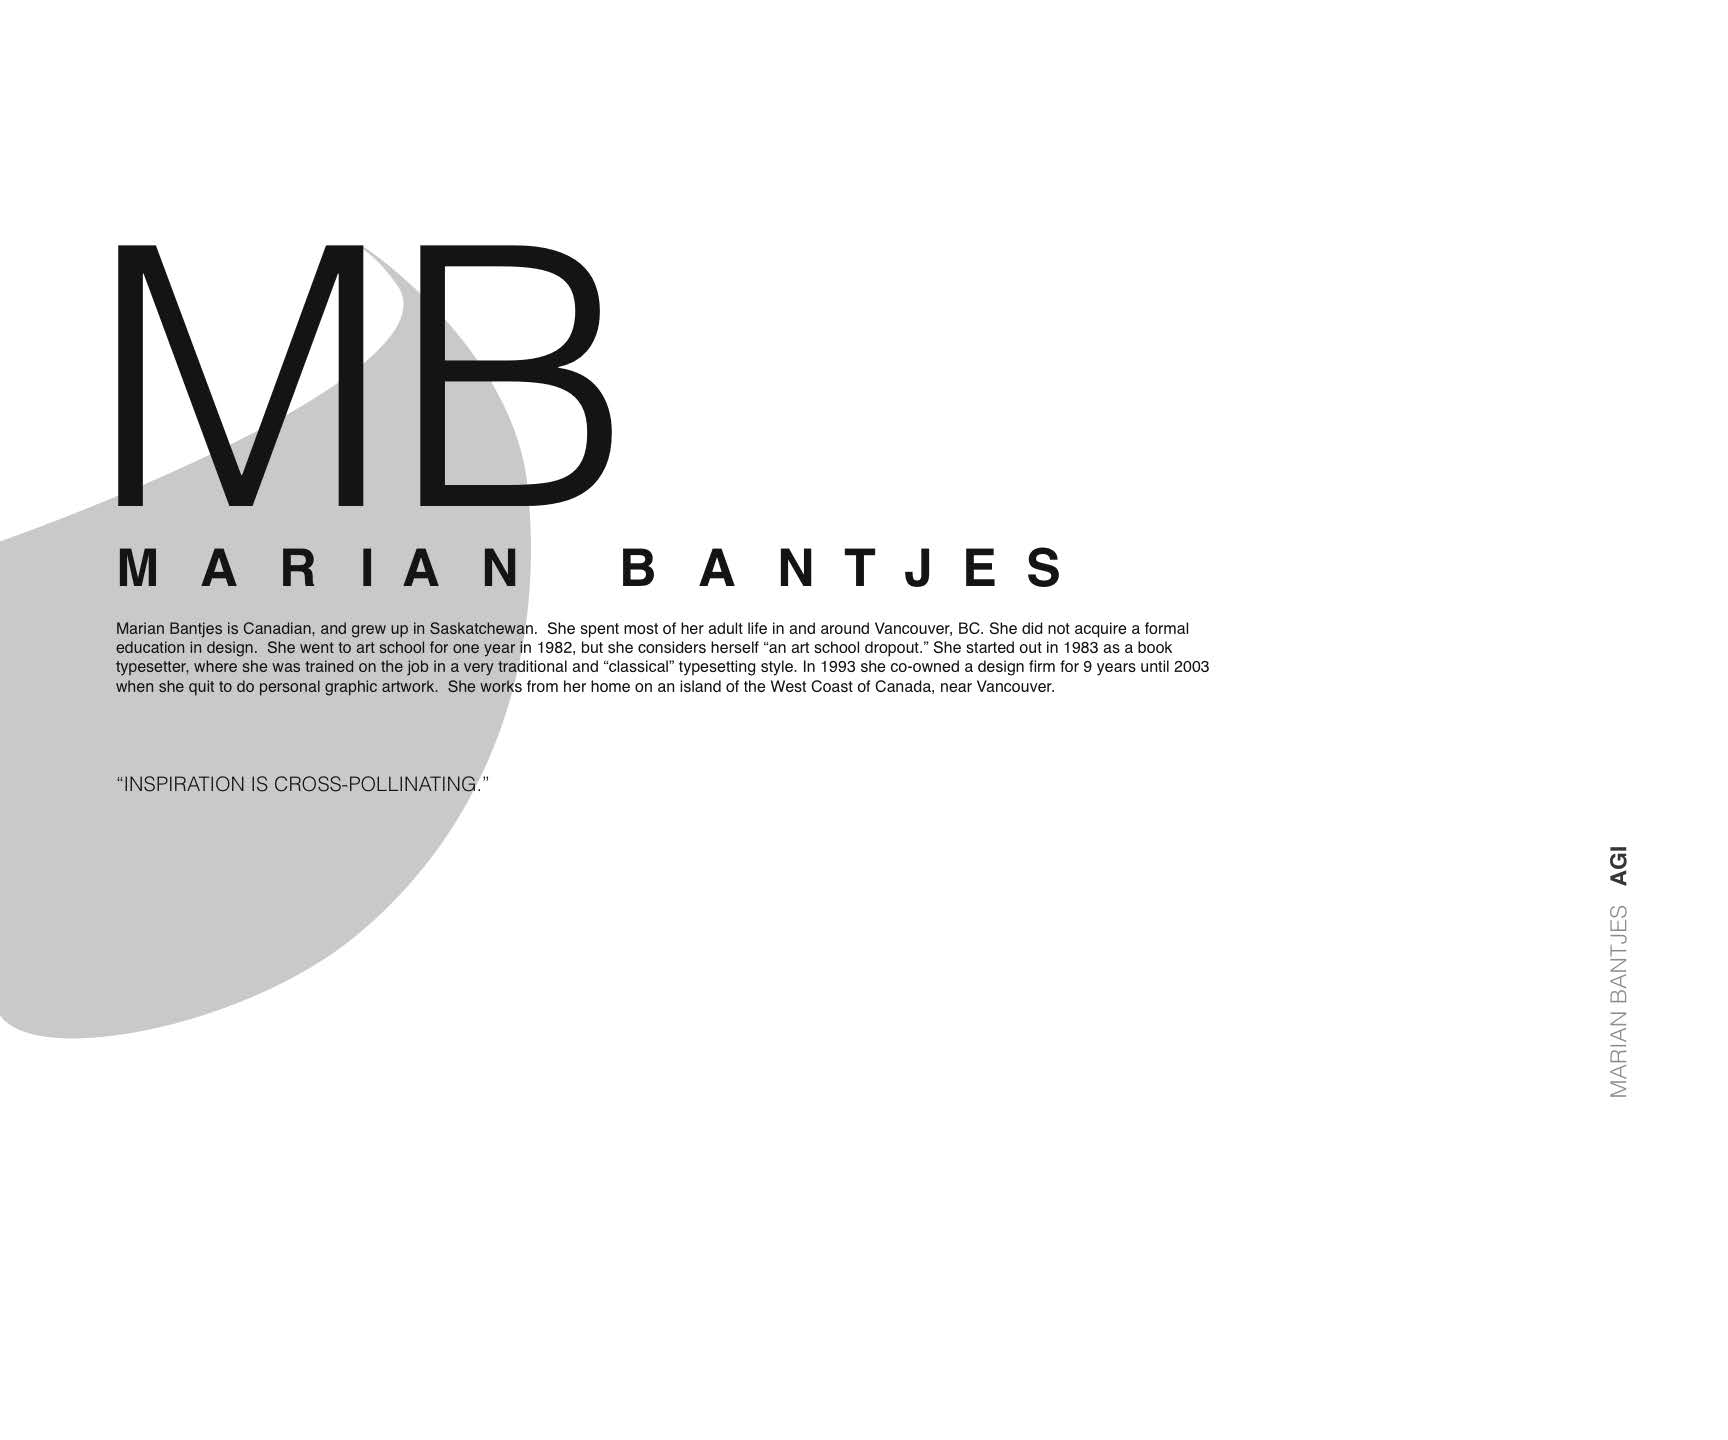 graphic design by samantha meredith at com graphic designer marian bantjes poster 1 objective explore a graphic designer and create two separte poster layouts about their bio using grid